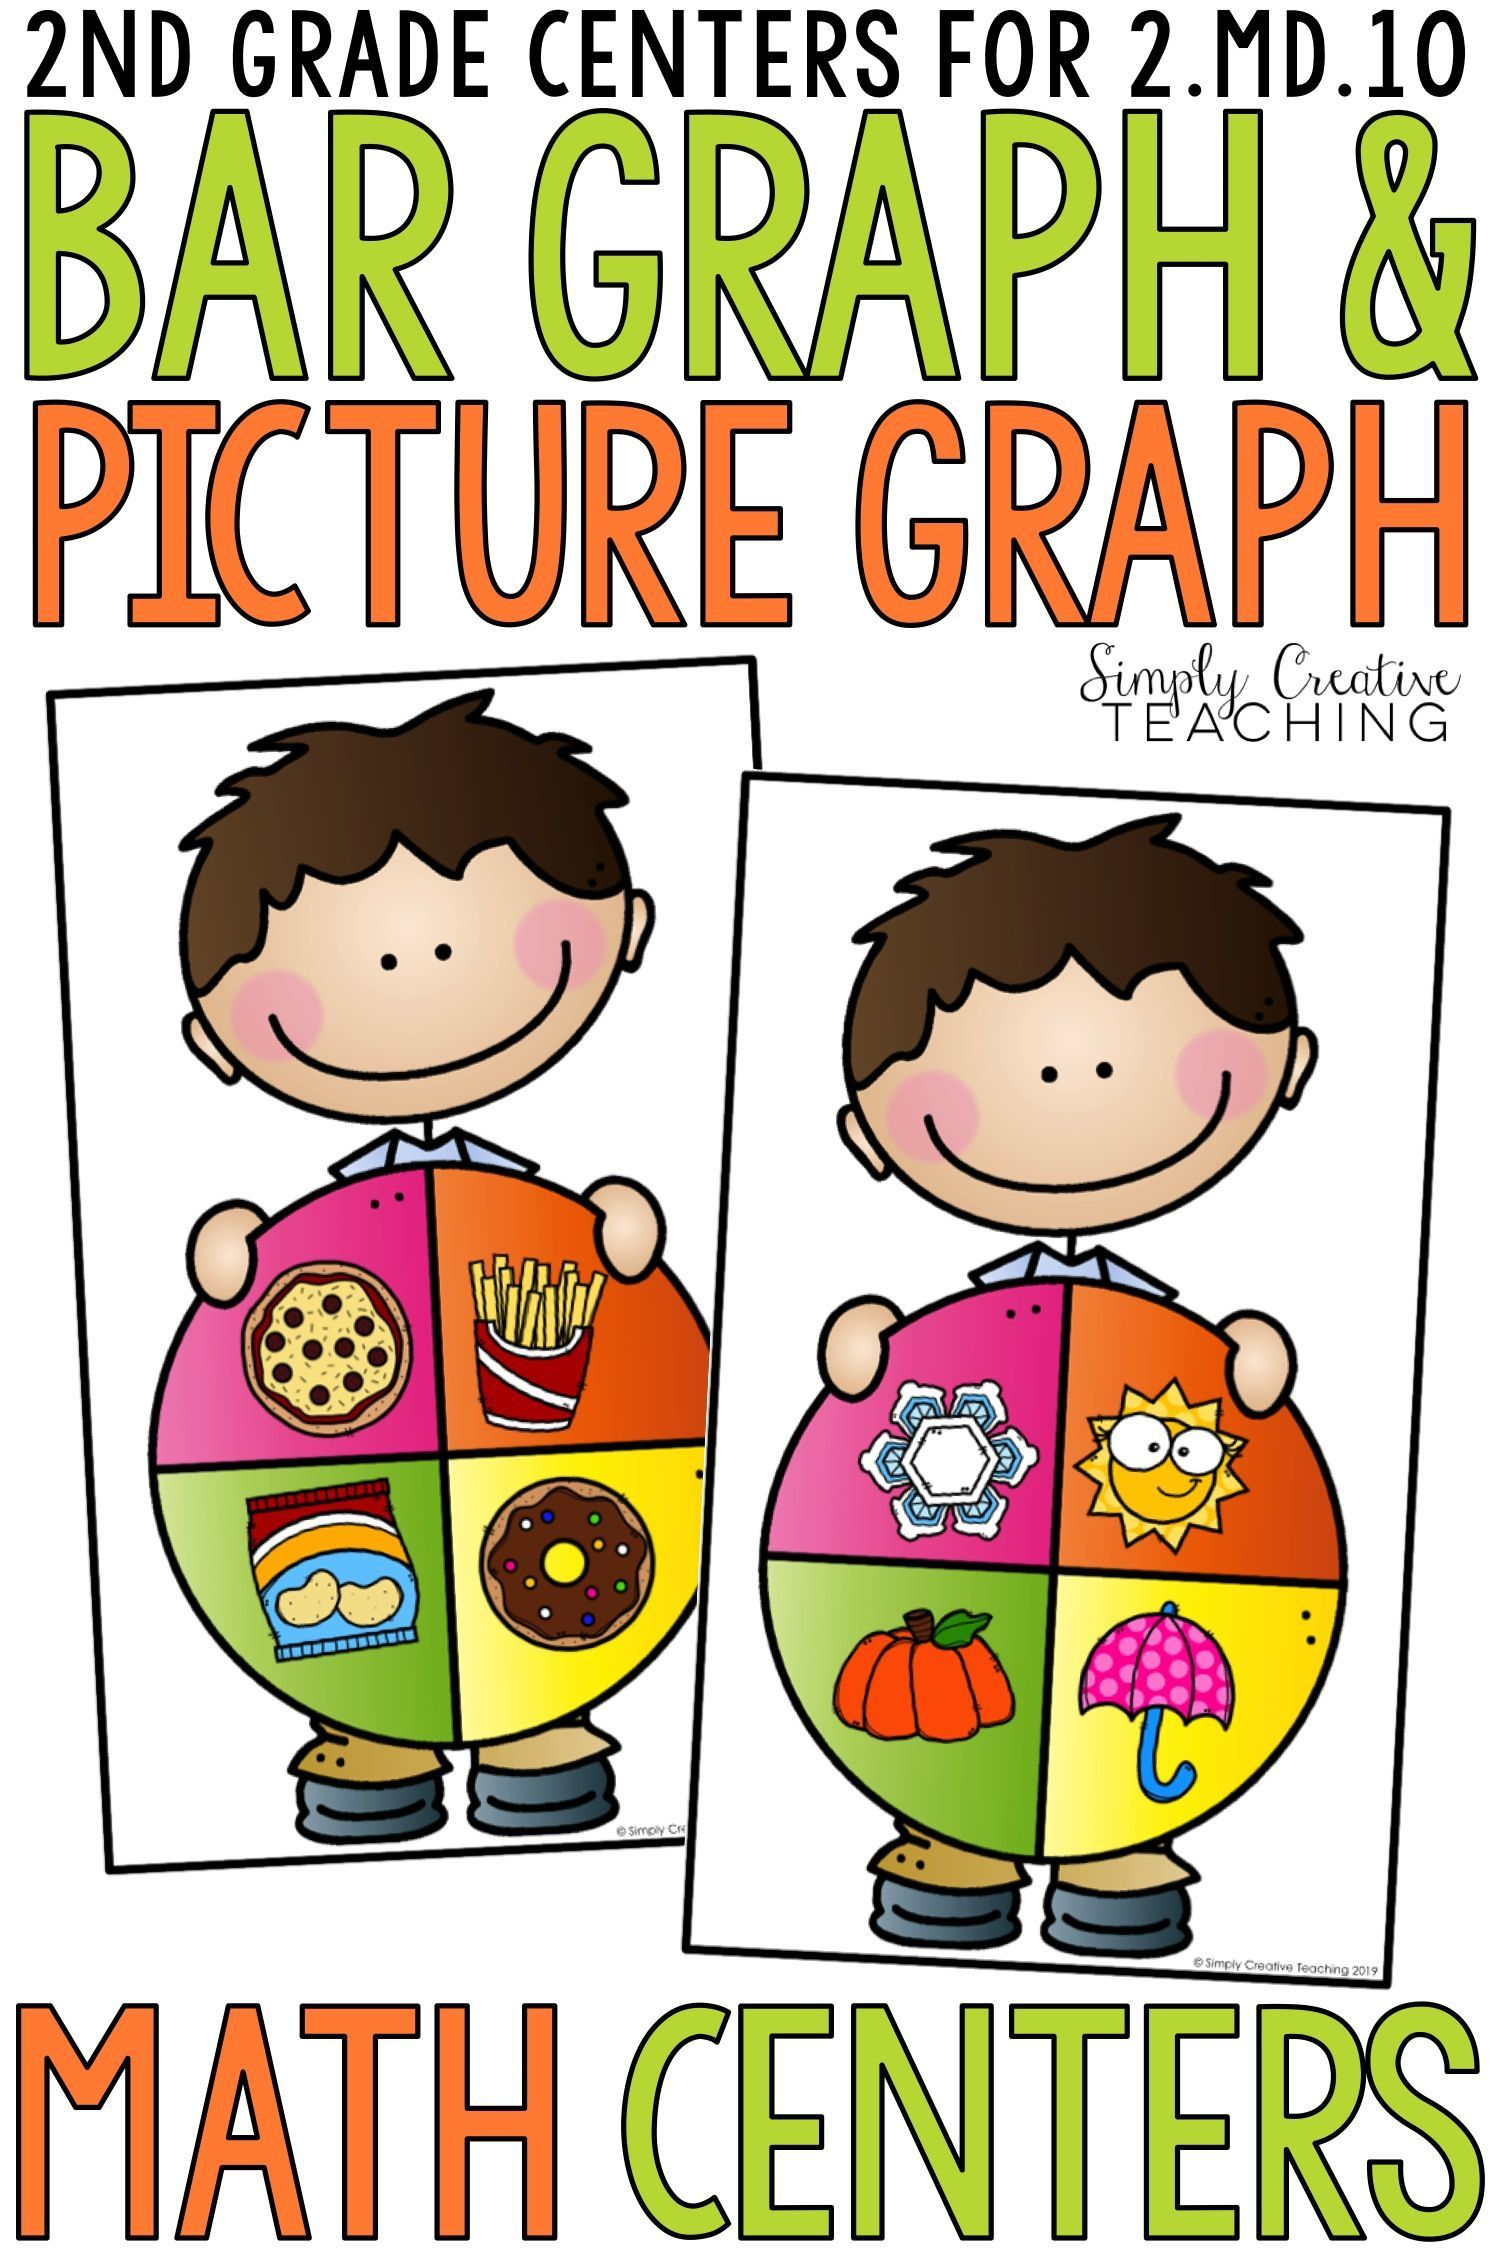 2nd Grade Bar Graphs Amp Picture Graphs Centers For 2 10